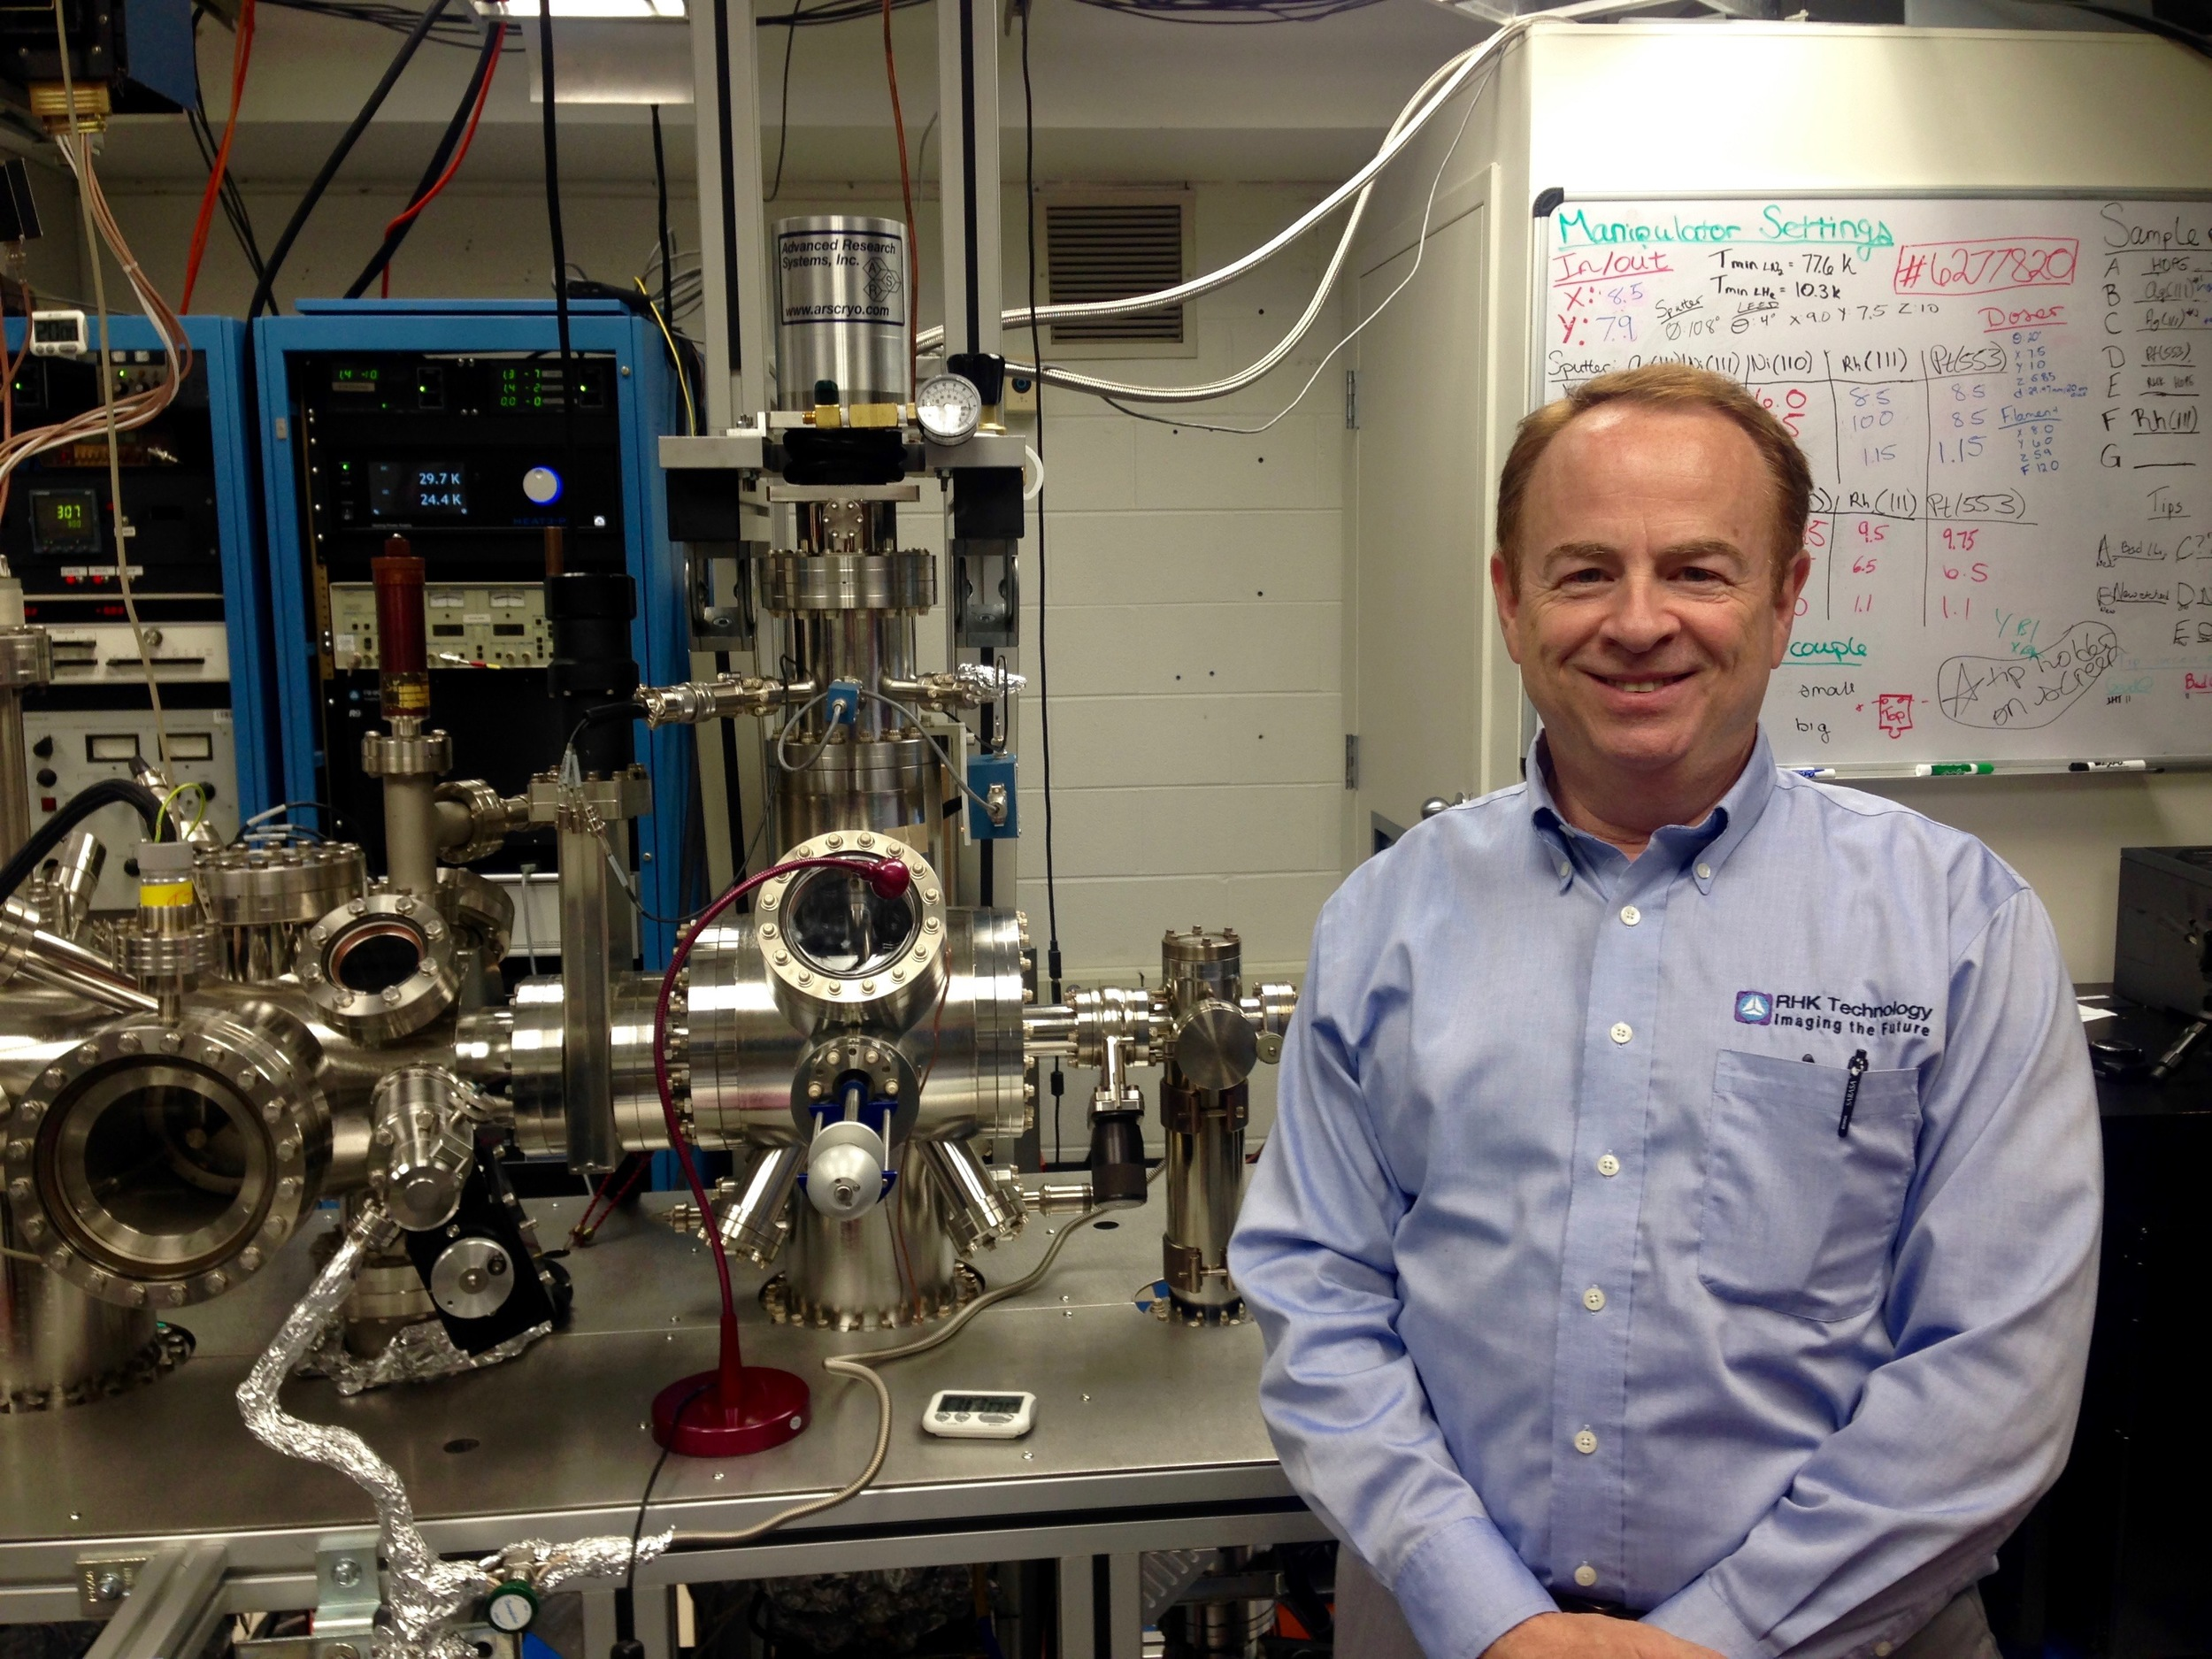 Adam Kollin, president of RHK Technology, visited the lab to see the ccHe STM in operation.